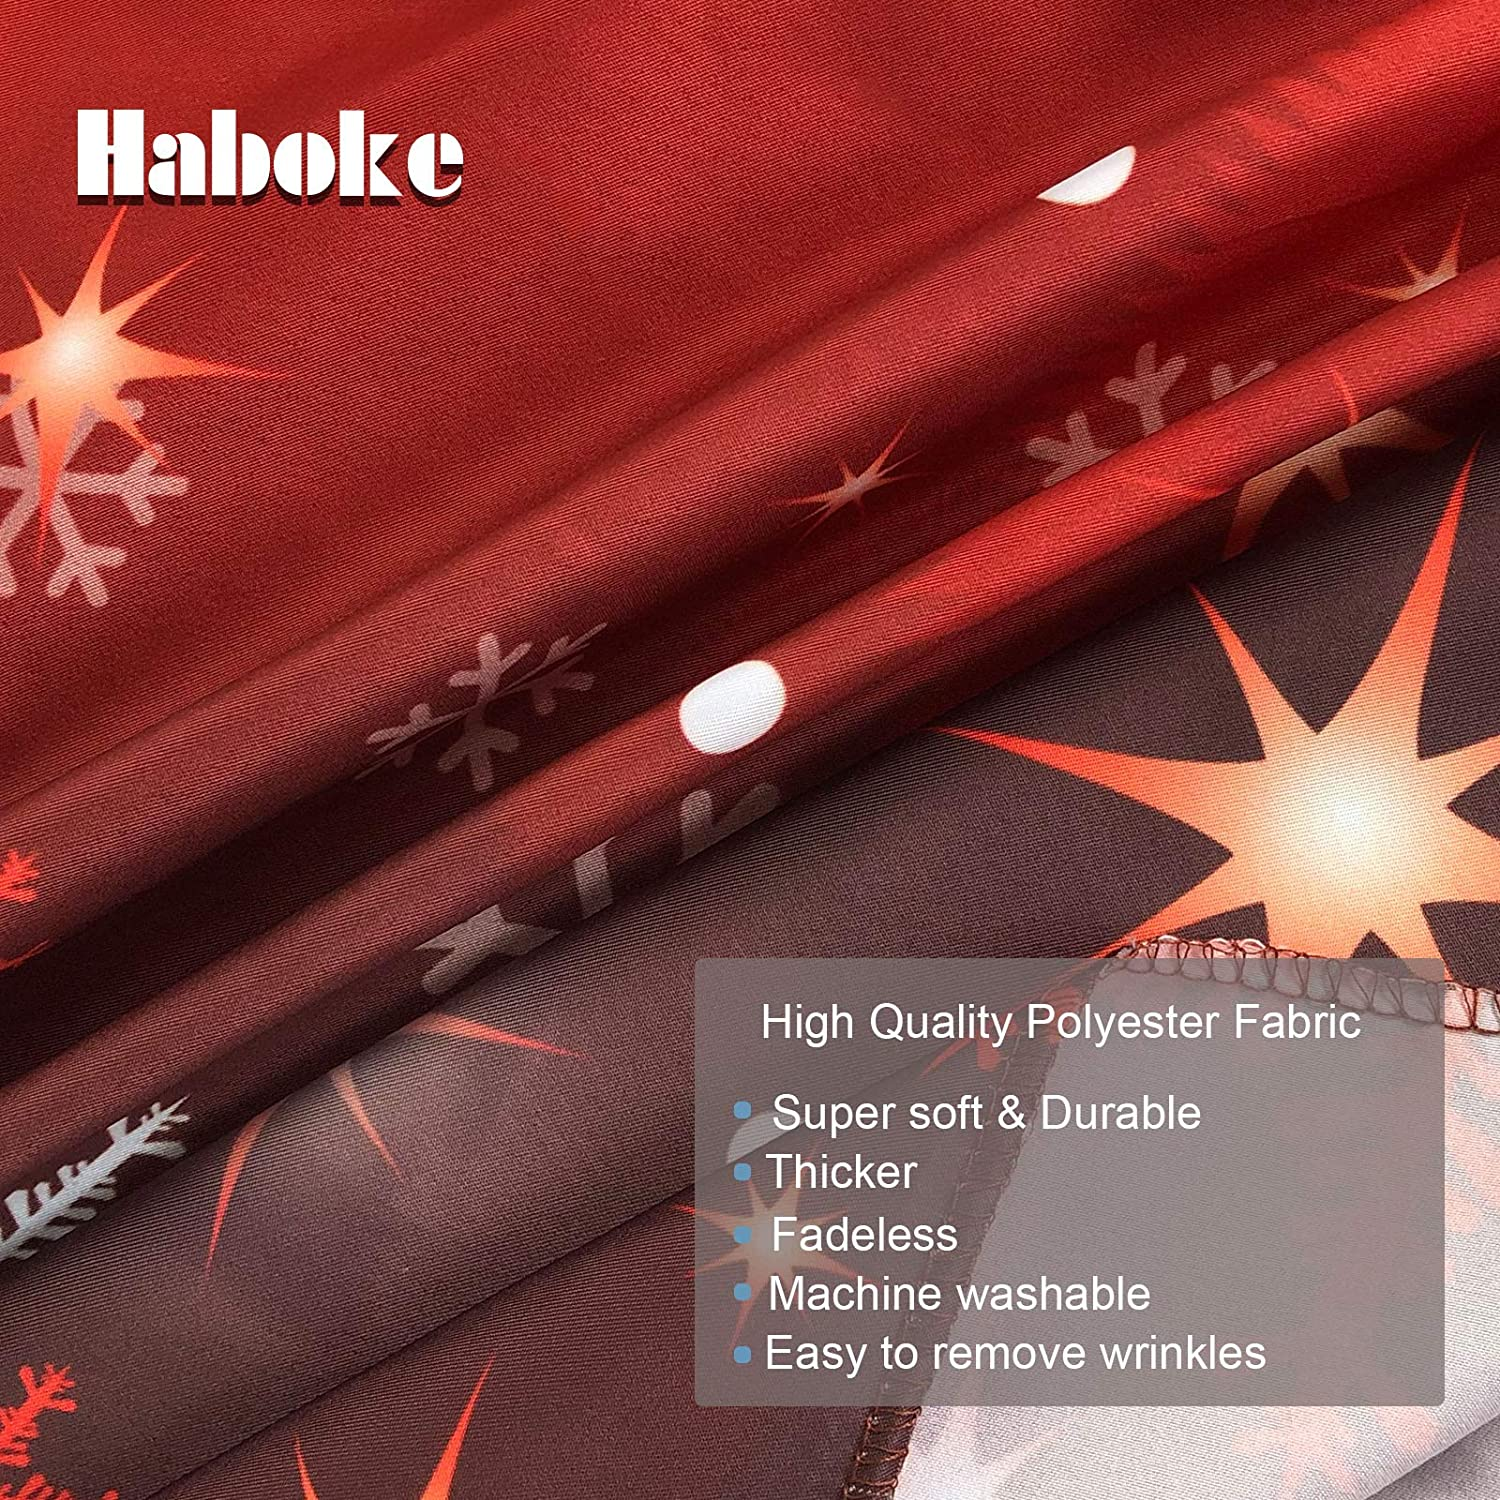 Haboke 10X8ft Durable//Soft Fabric Winter Red and Christmas Tree Backdrop for Photography Snowflake Bokeh Photo Background Banner Studio Props Christmas Party Decorations Supplies